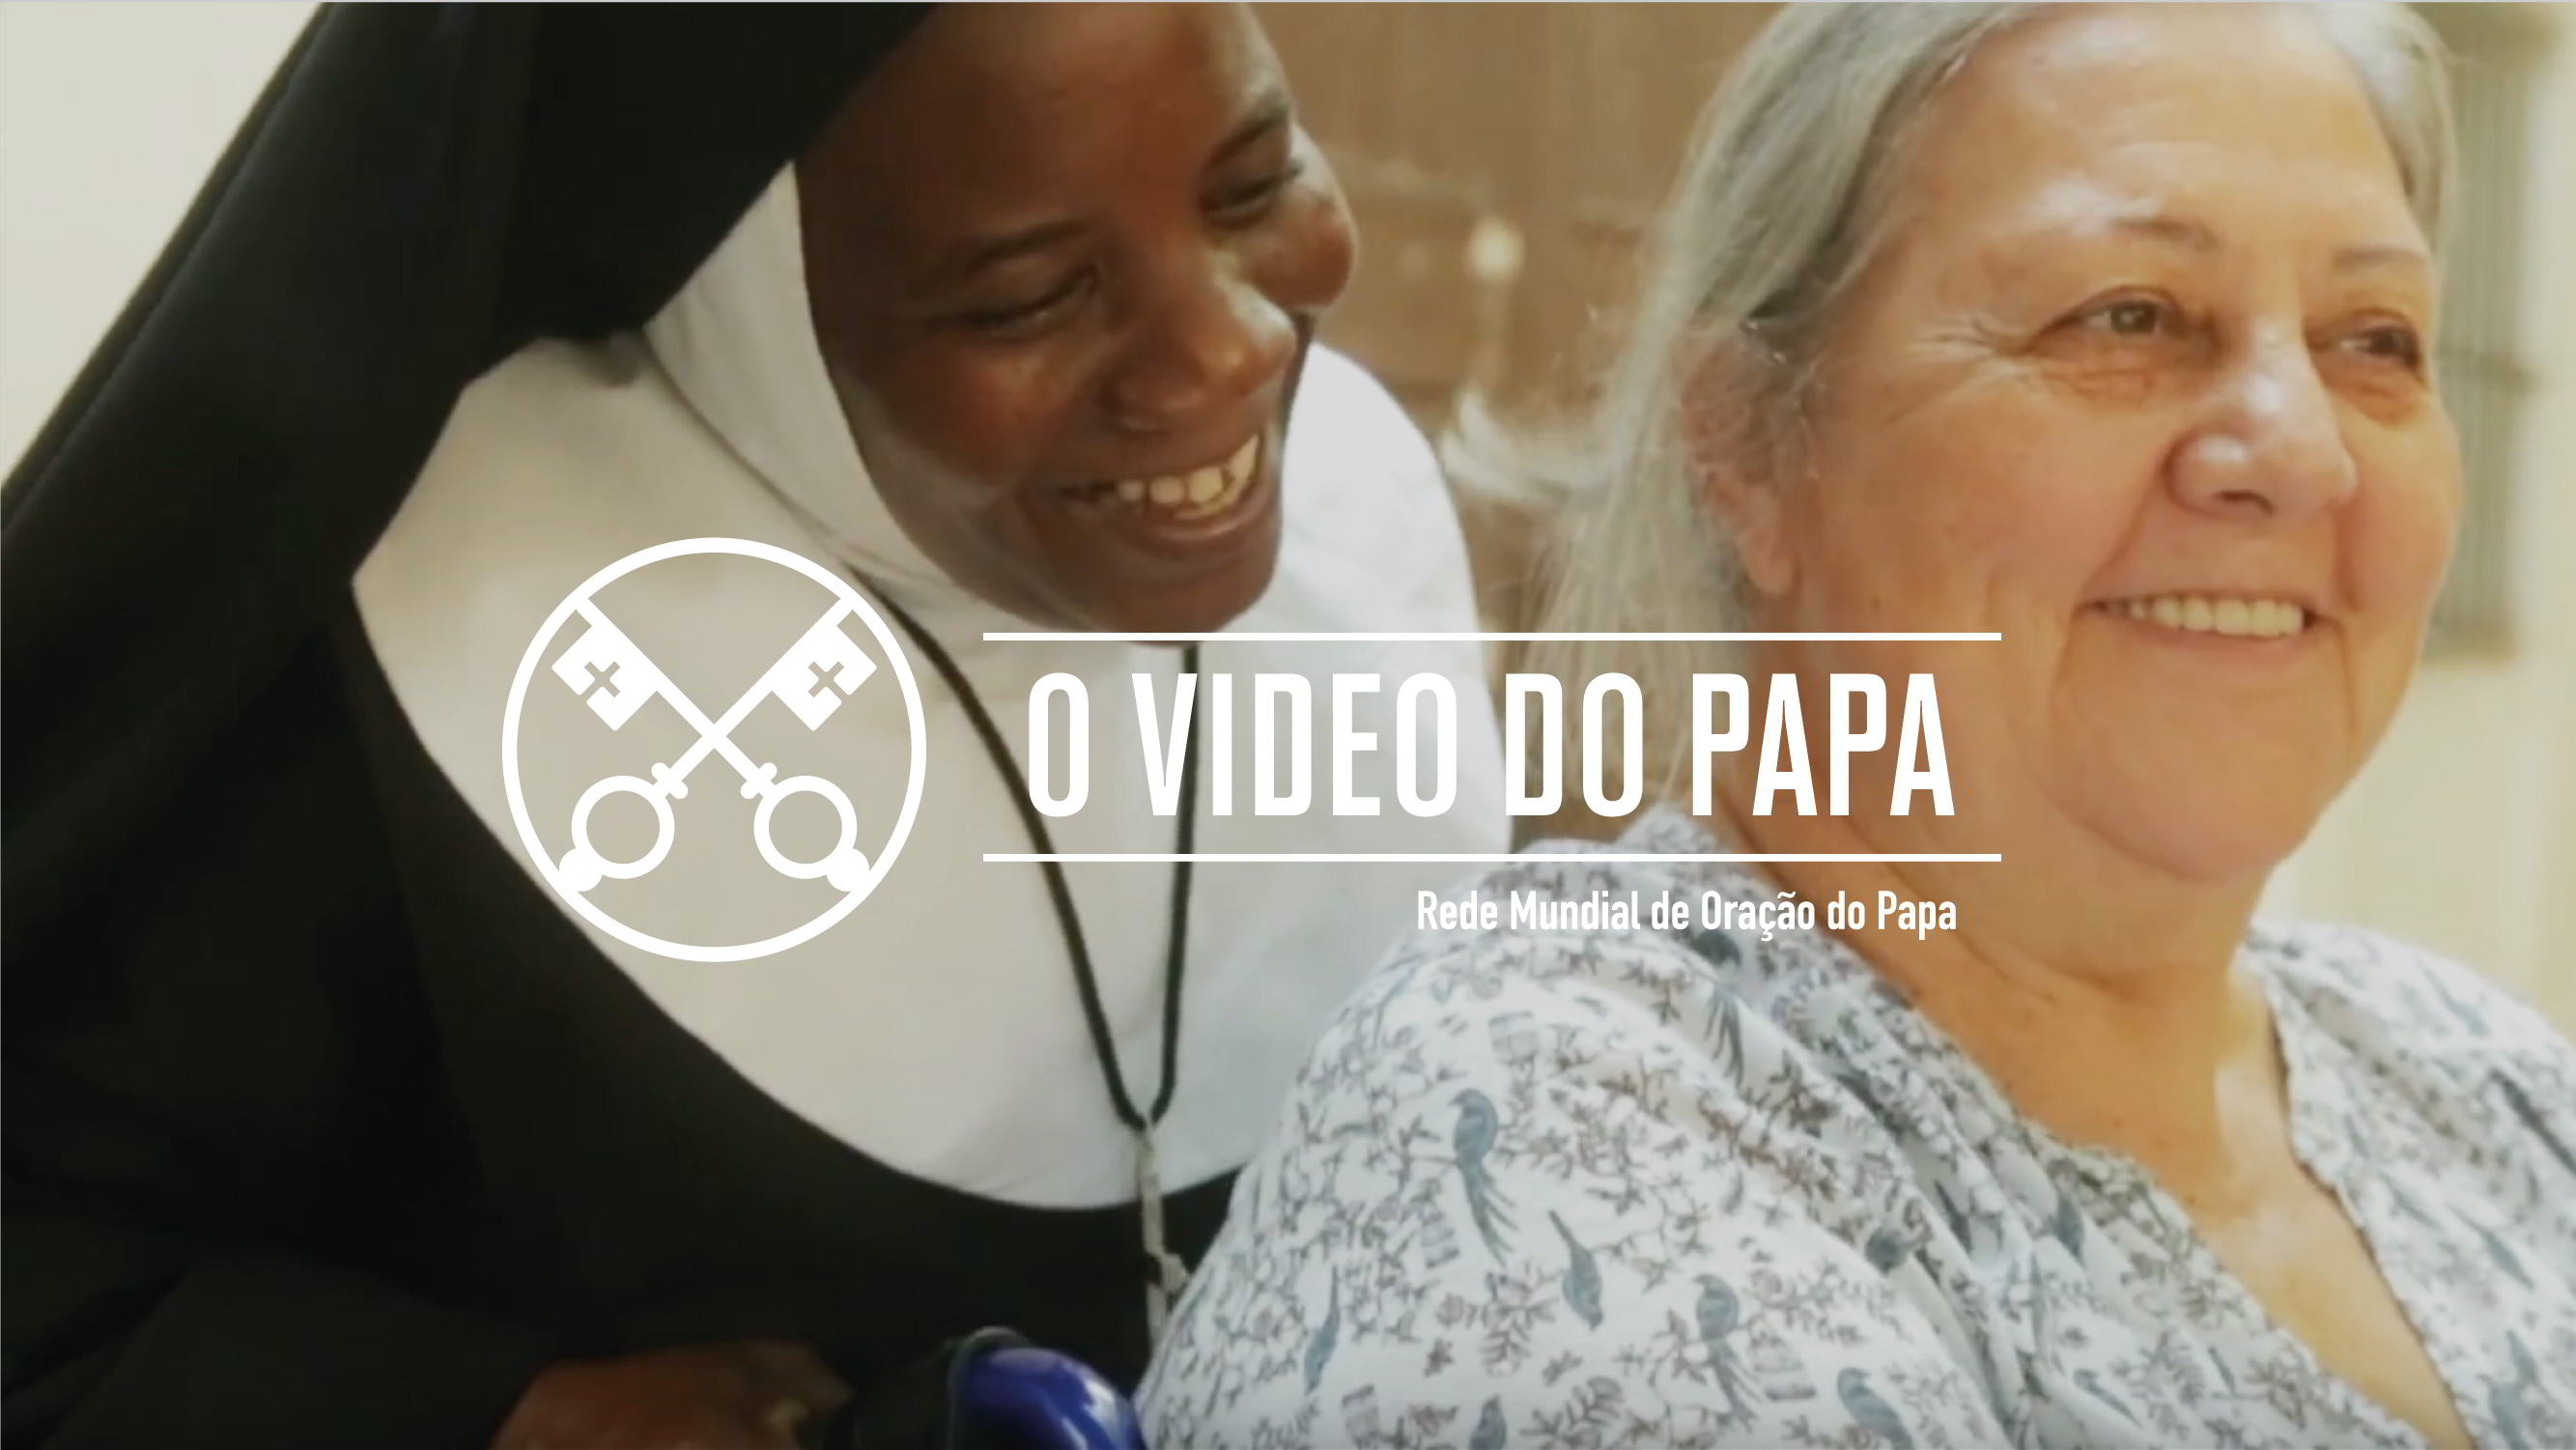 Official Image - The Pope Video 10 2018 - Mission of Religious - 5 Portuguese